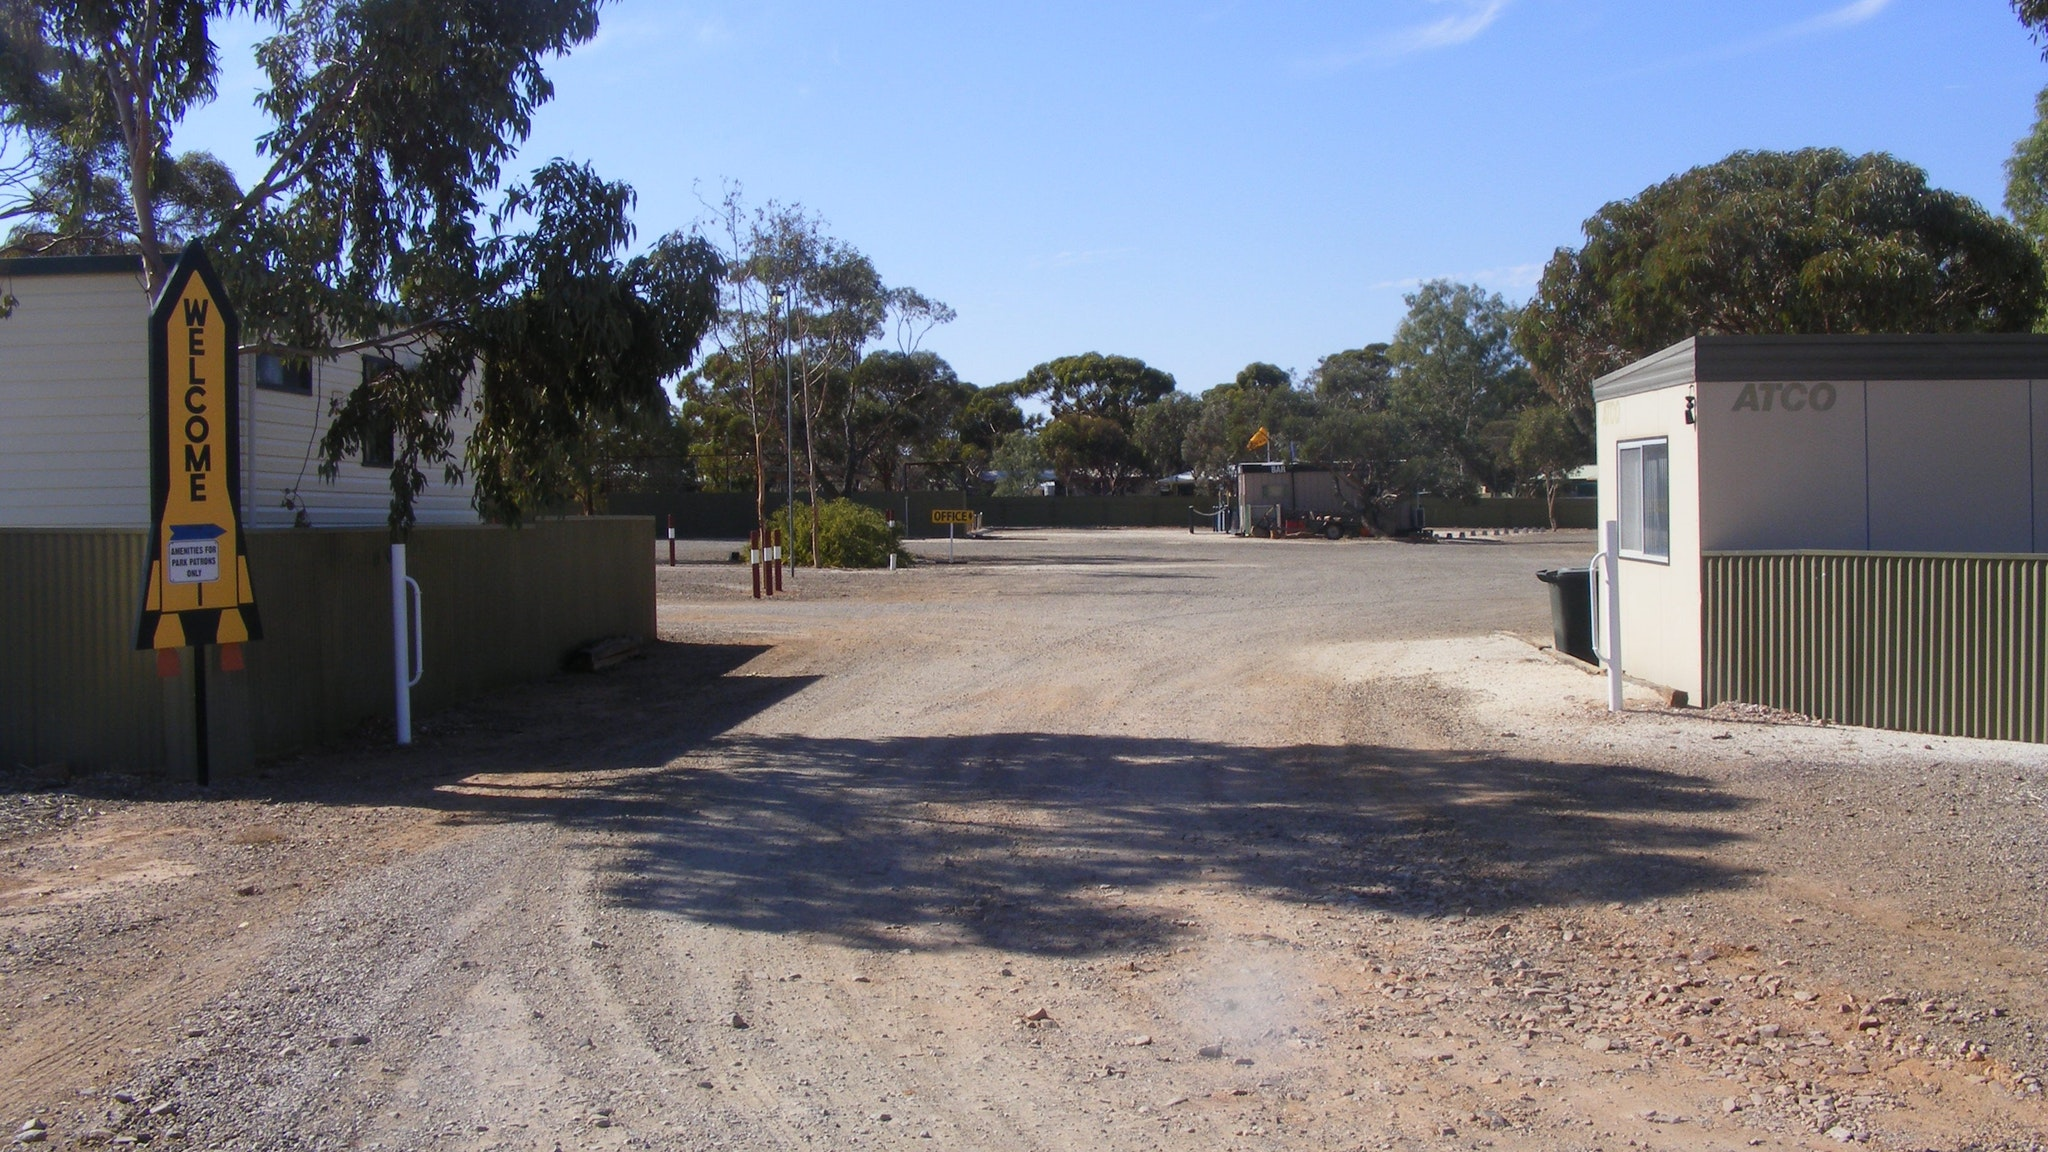 Woomera Travellers Village and Caravan Park